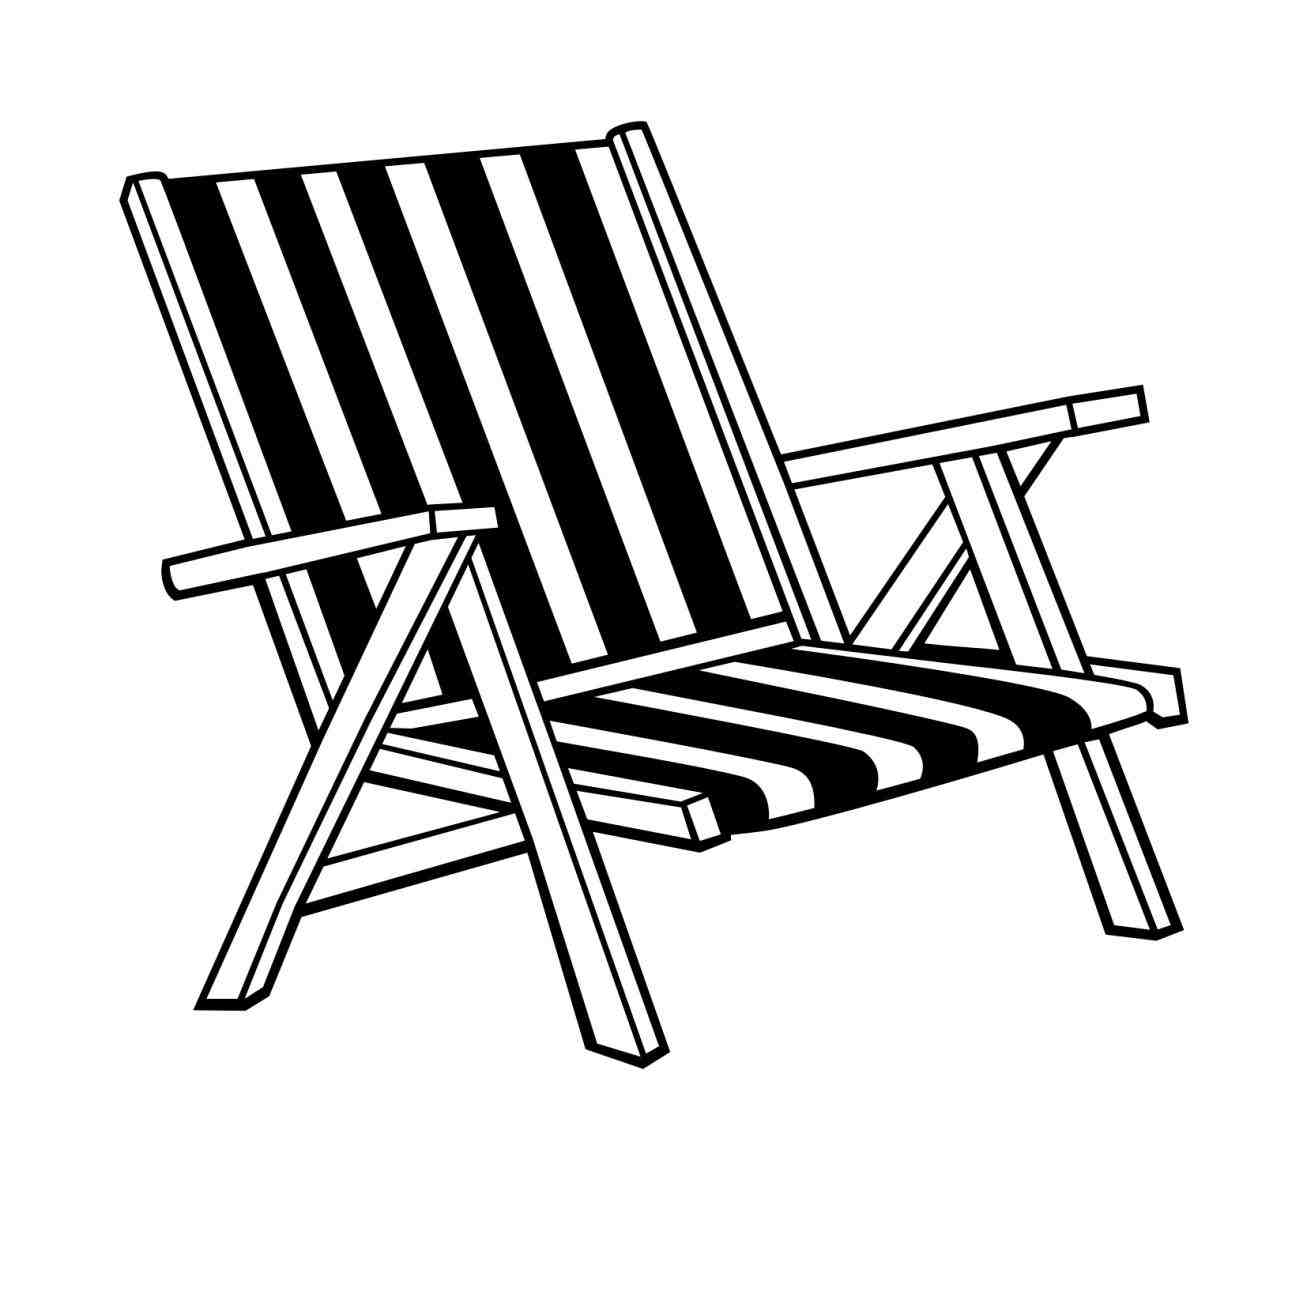 Chair Clipart. chair clipart black and white rocking chair.